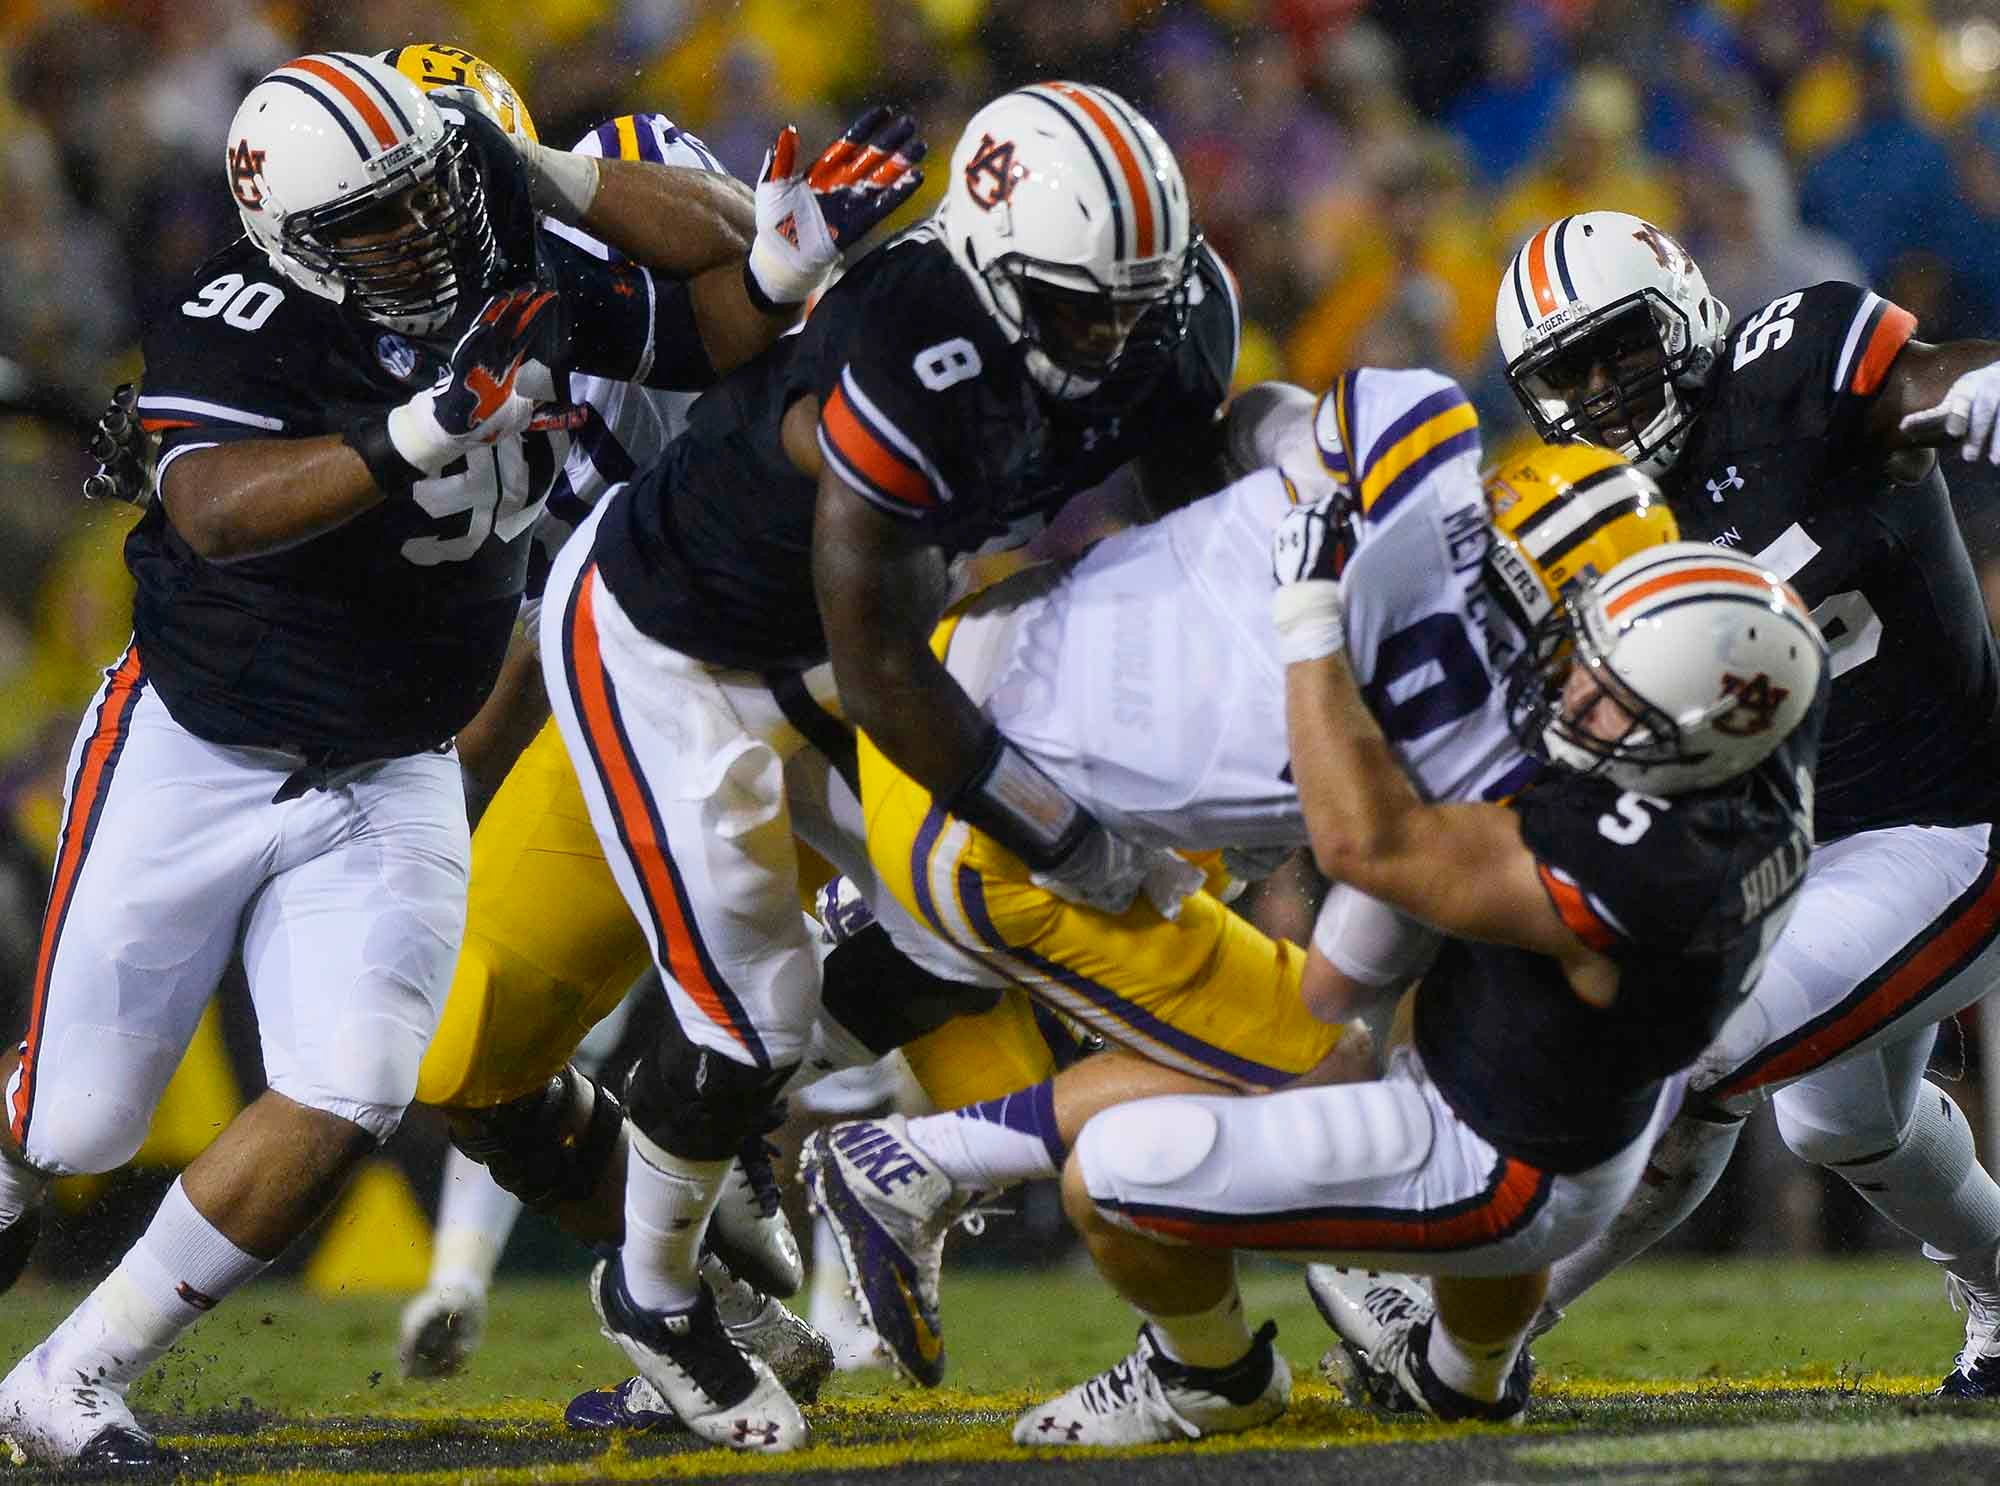 LSU quarterback Zach Mettenberger gets sacked by the Aubu